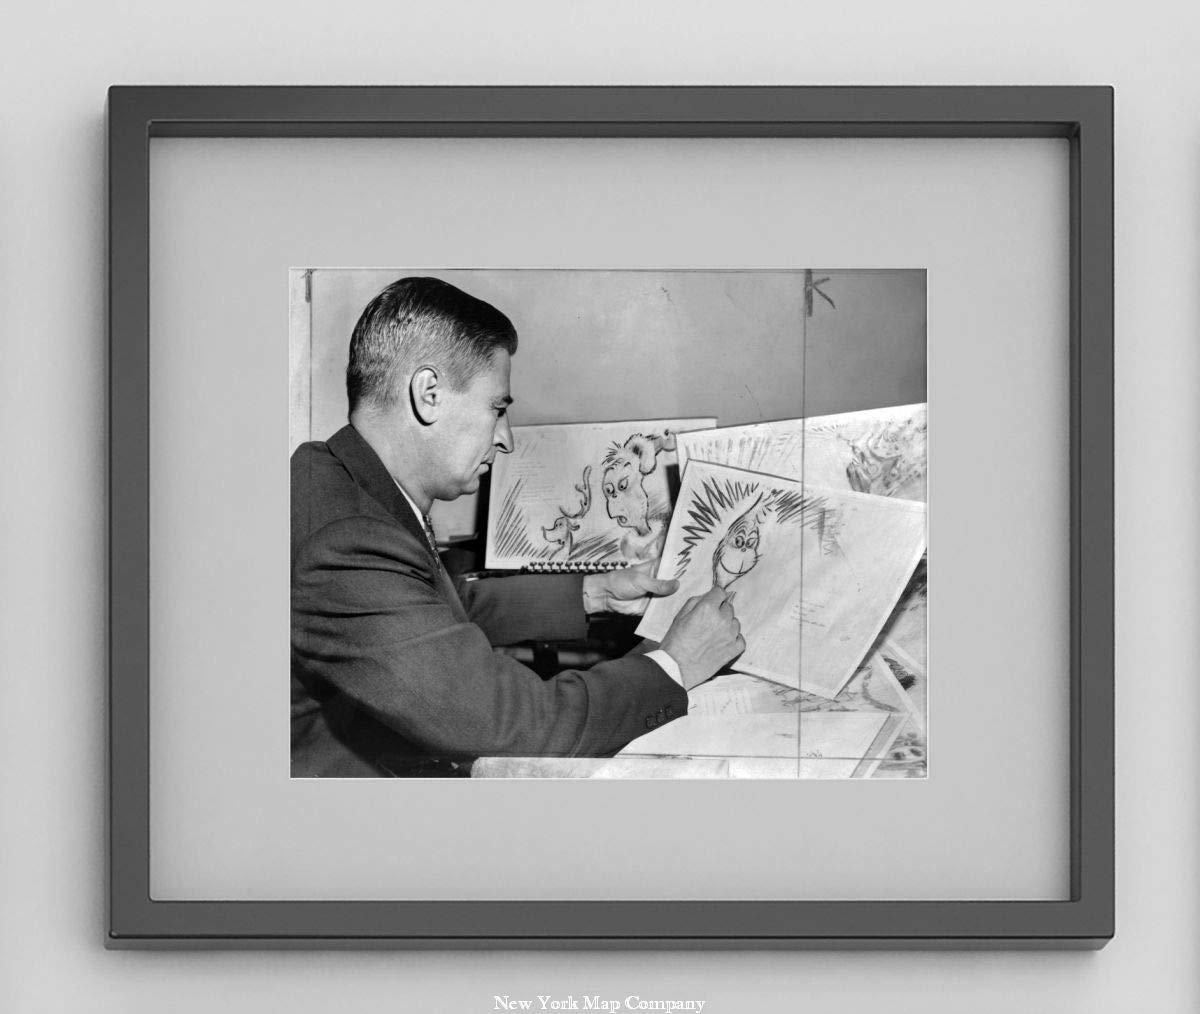 How the Grinch Stole Christmas // World Telegram /& Sun photo by Al Ravenna at work on a drawing of a grinch Vintage 8x10 Photograph the hero of his forthcoming book Seuss 1957 photo Dr Ready to Frame Ted Geisel